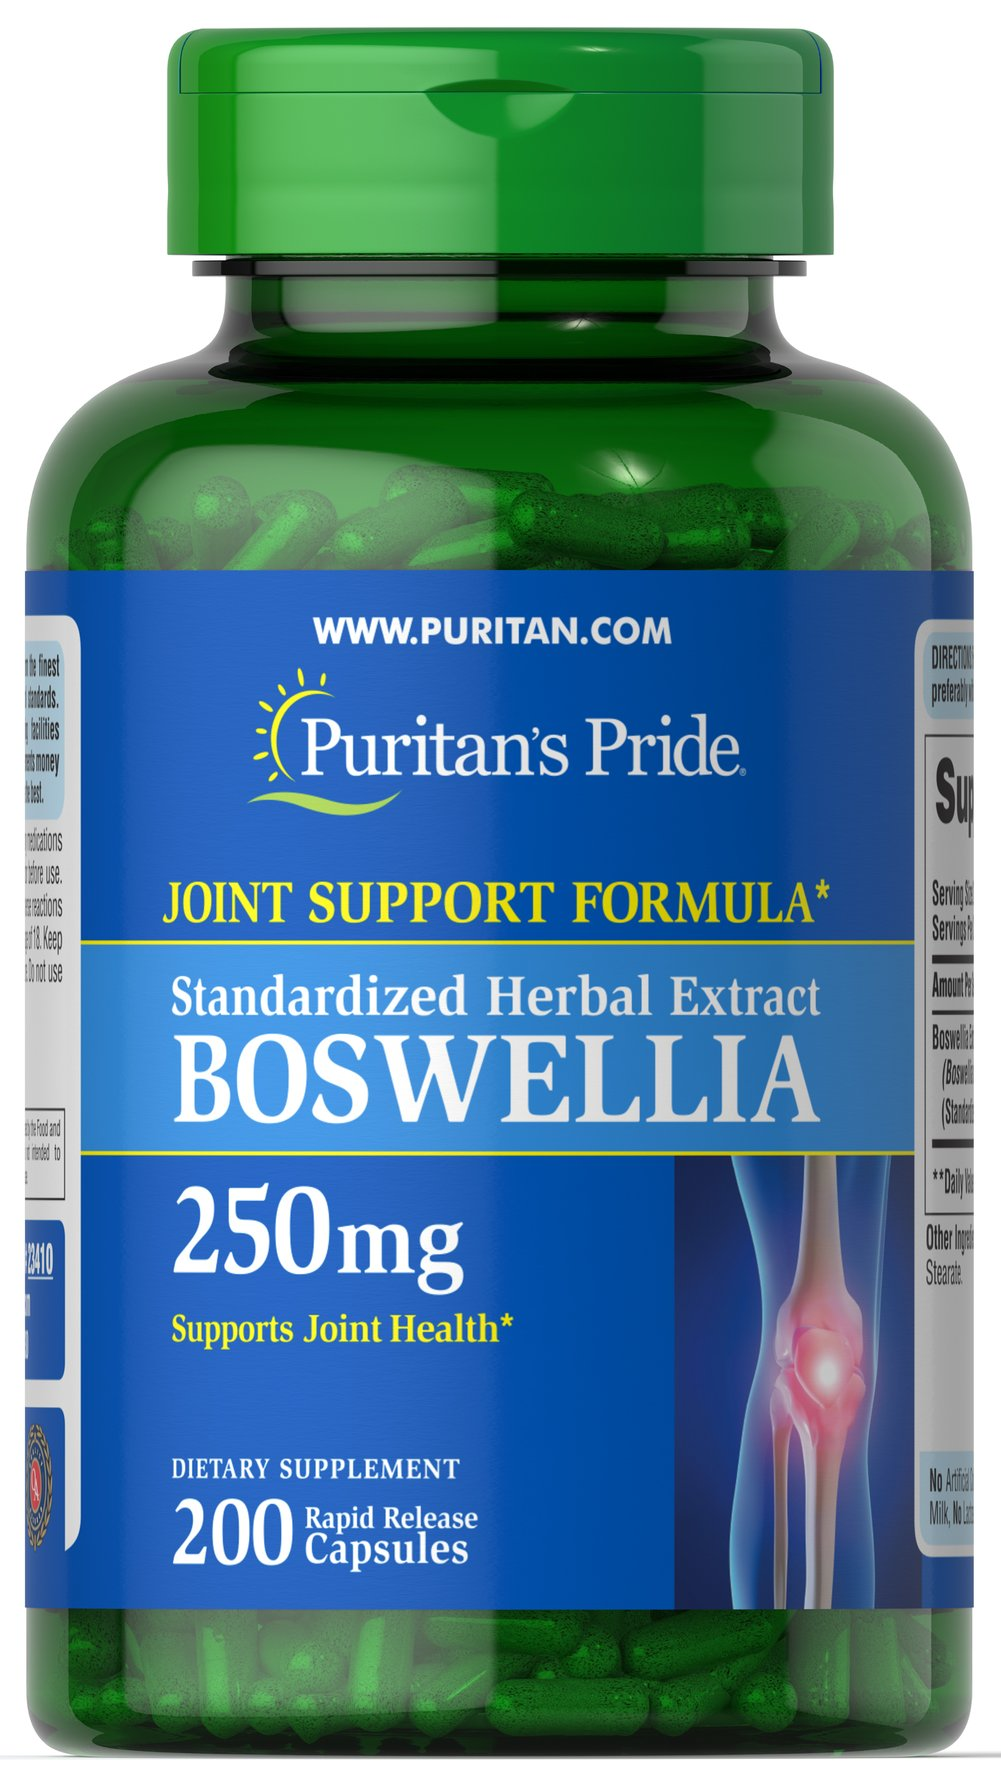 Boswellia Standardized Extract 250mg <p>Standardized to Contain 65% Boswellic Acid, 162.5 mg.</p><p><strong>Boswellia</strong> is a centuries old herb that helps support the structural health of cartilage.**</p> 200 Capsules 250 mg $37.99